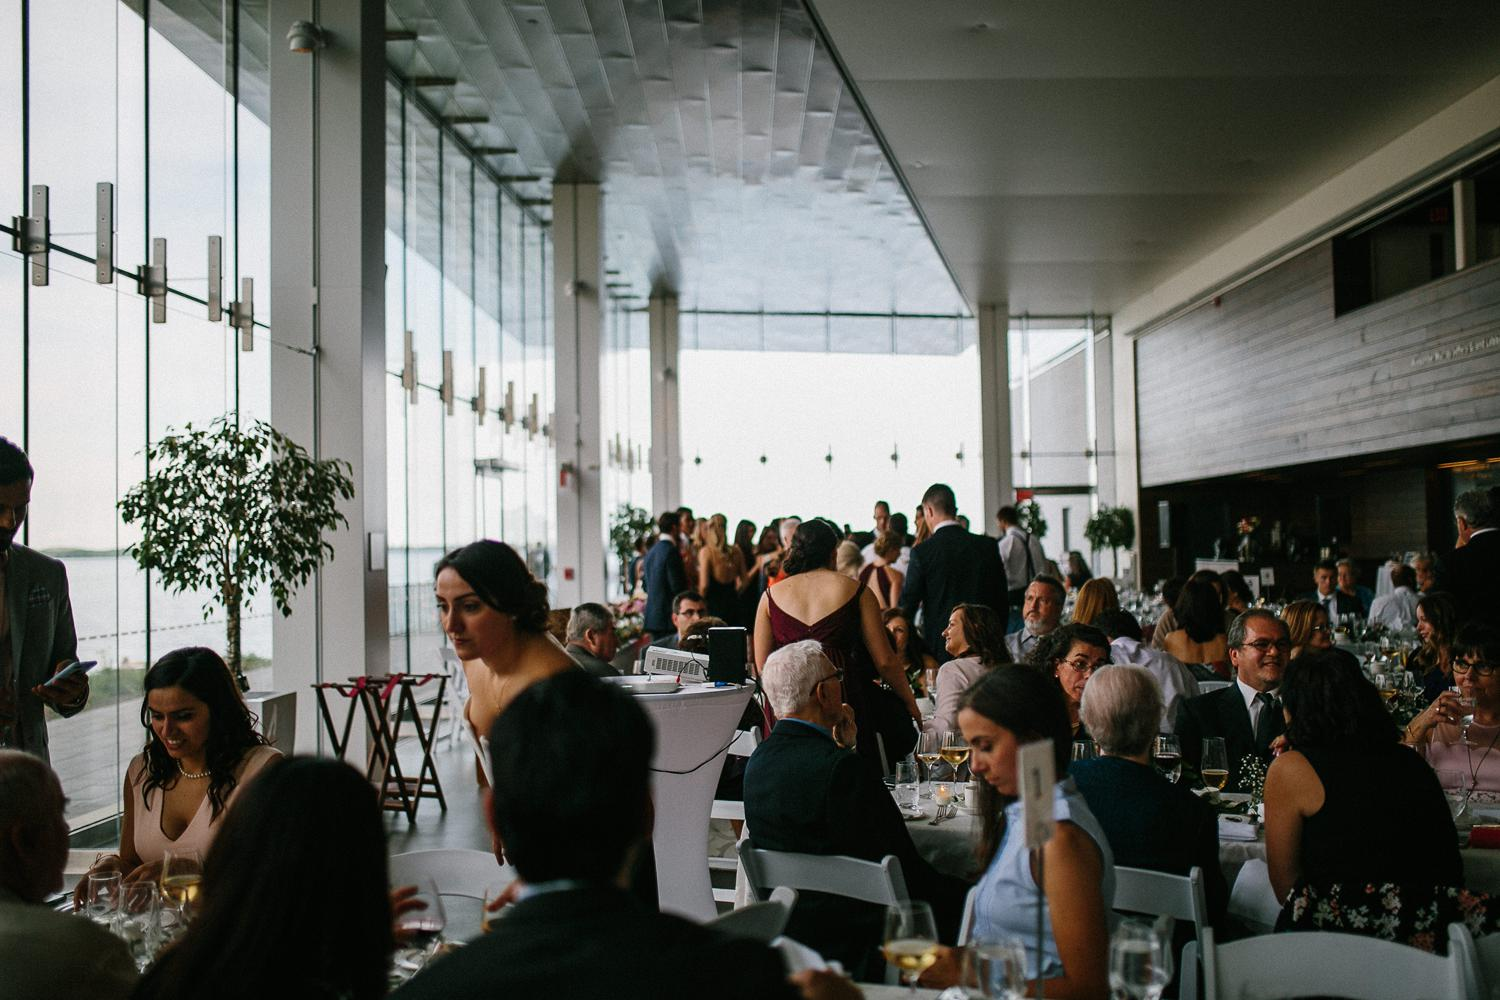 The Isabel Bader Centre for the Performing Arts Kingston Wedding Kerry Ford Photography-238.jpg